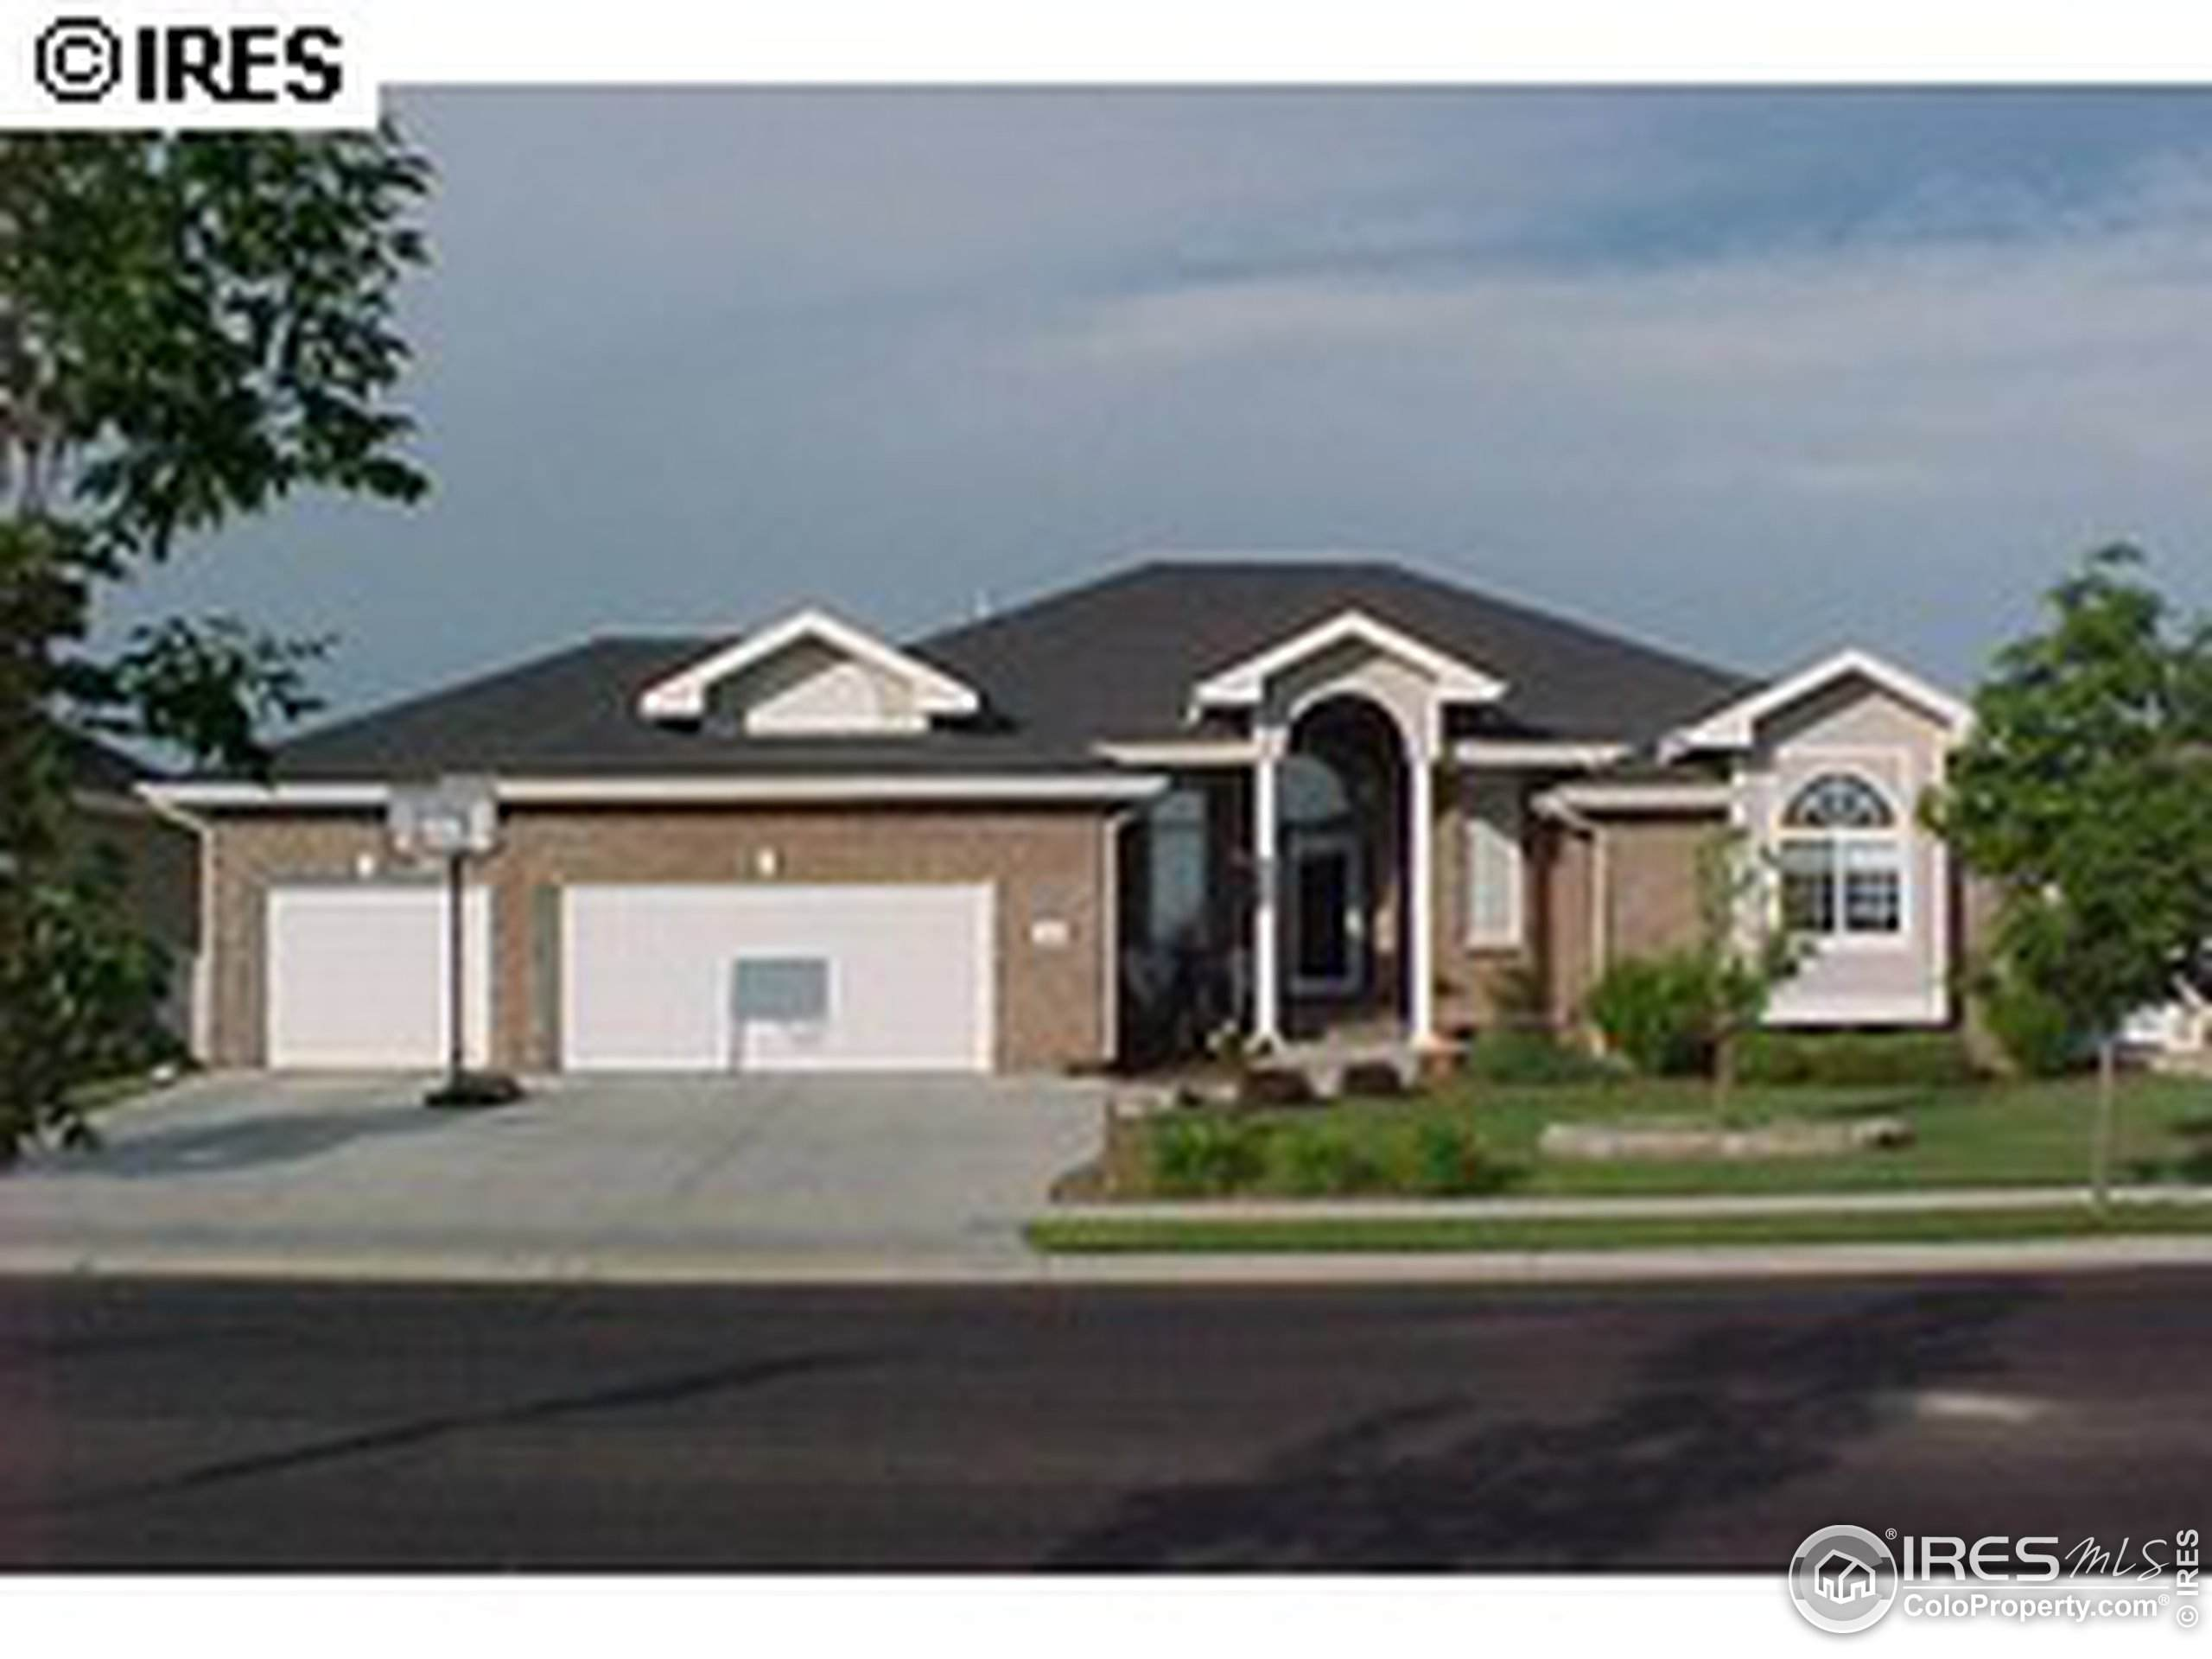 3790 Jefferson Dr, Loveland, CO 80538 (MLS #917345) :: Bliss Realty Group